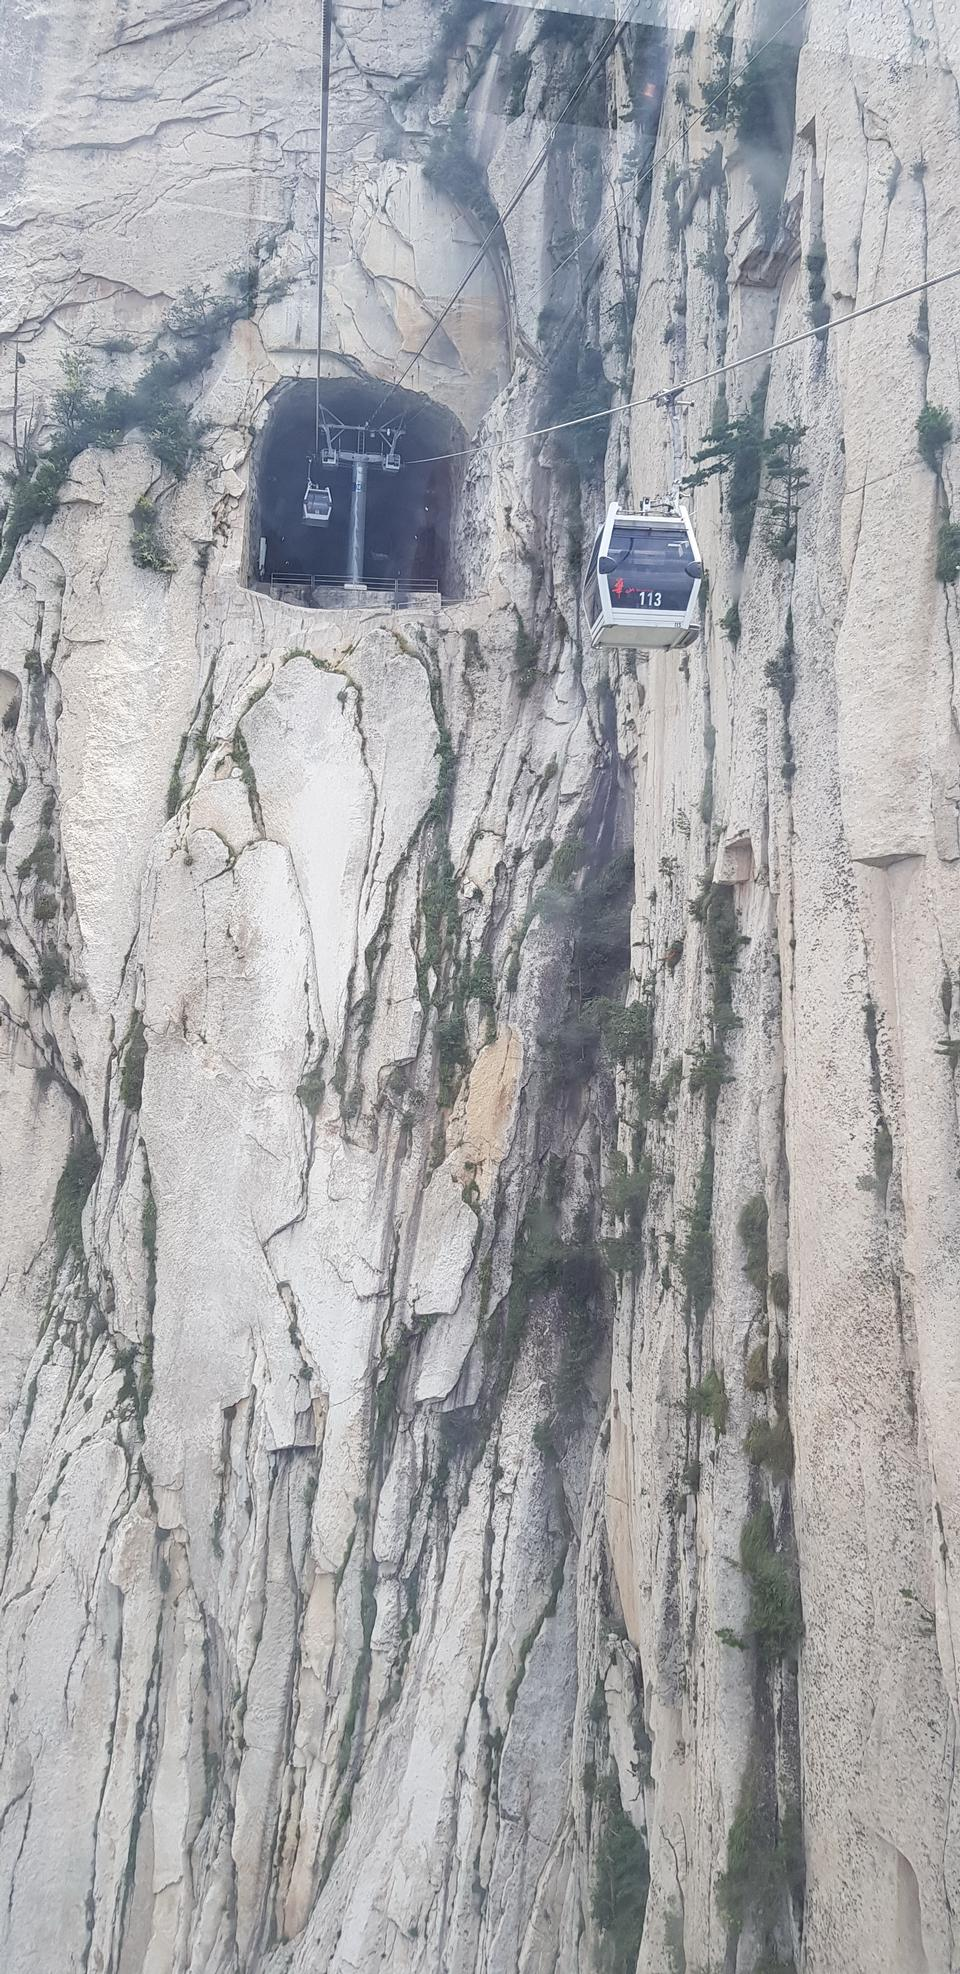 Free download high resolution image - free image free photo free stock image public domain picture  The cable car of mountain, China, Xian